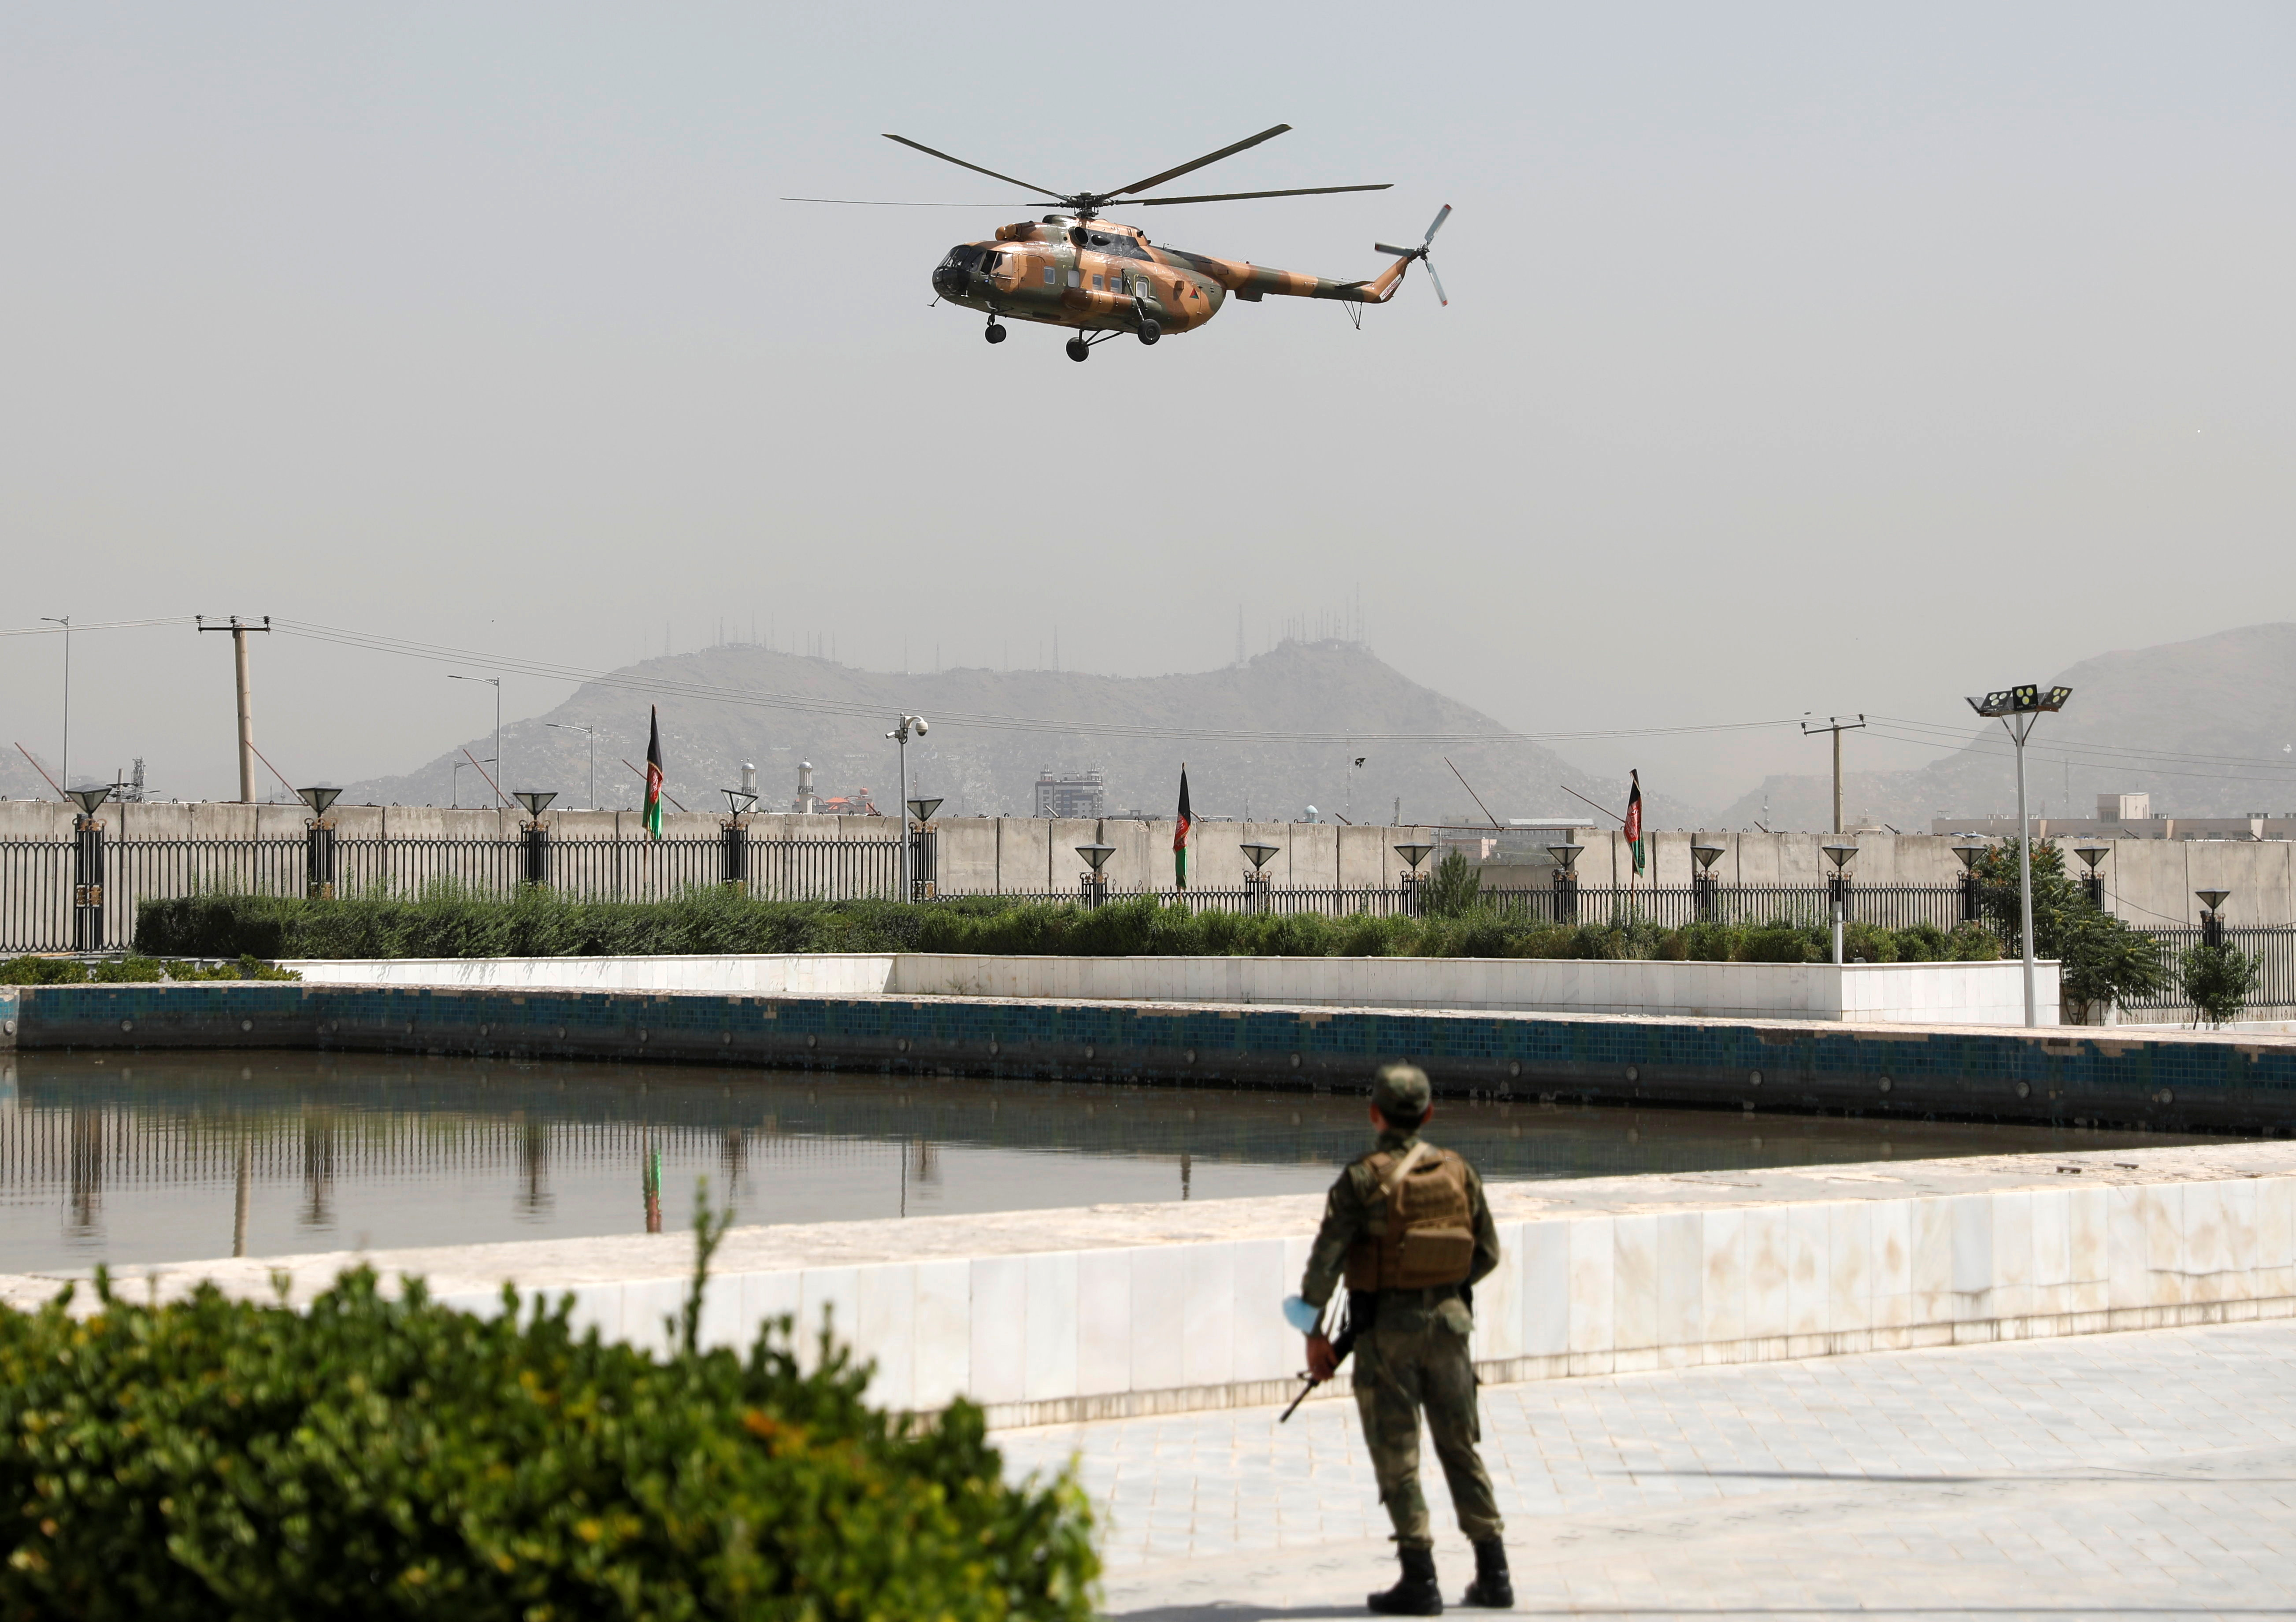 A military helicopter carrying Afghan President Ashraf Ghani prepares to land near the parliament in Kabul, Afghanistan August 2, 2021. REUTERS/Stringer